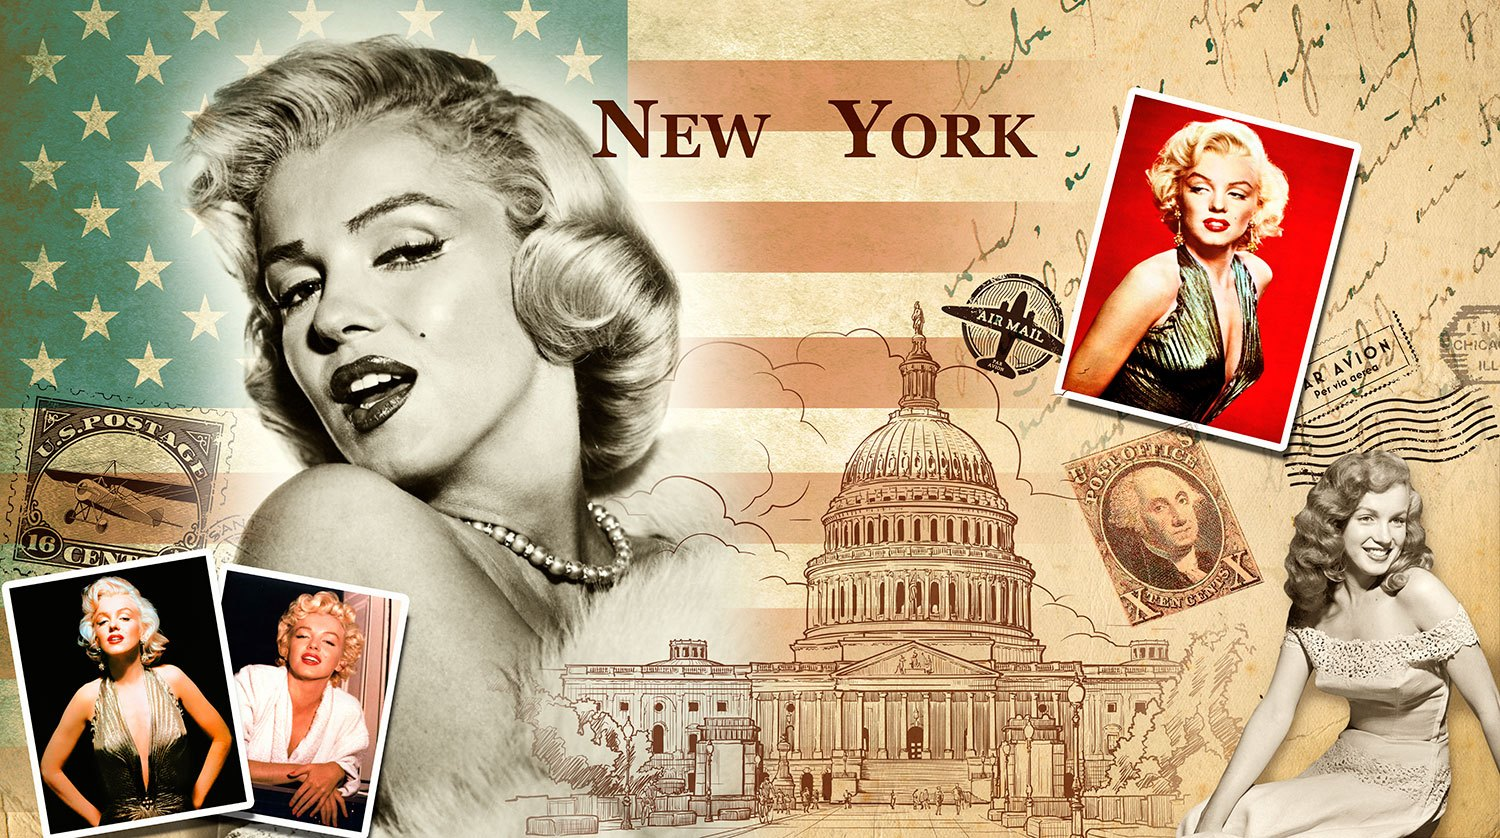 Poster xxl: Collage Marilyn Monroe